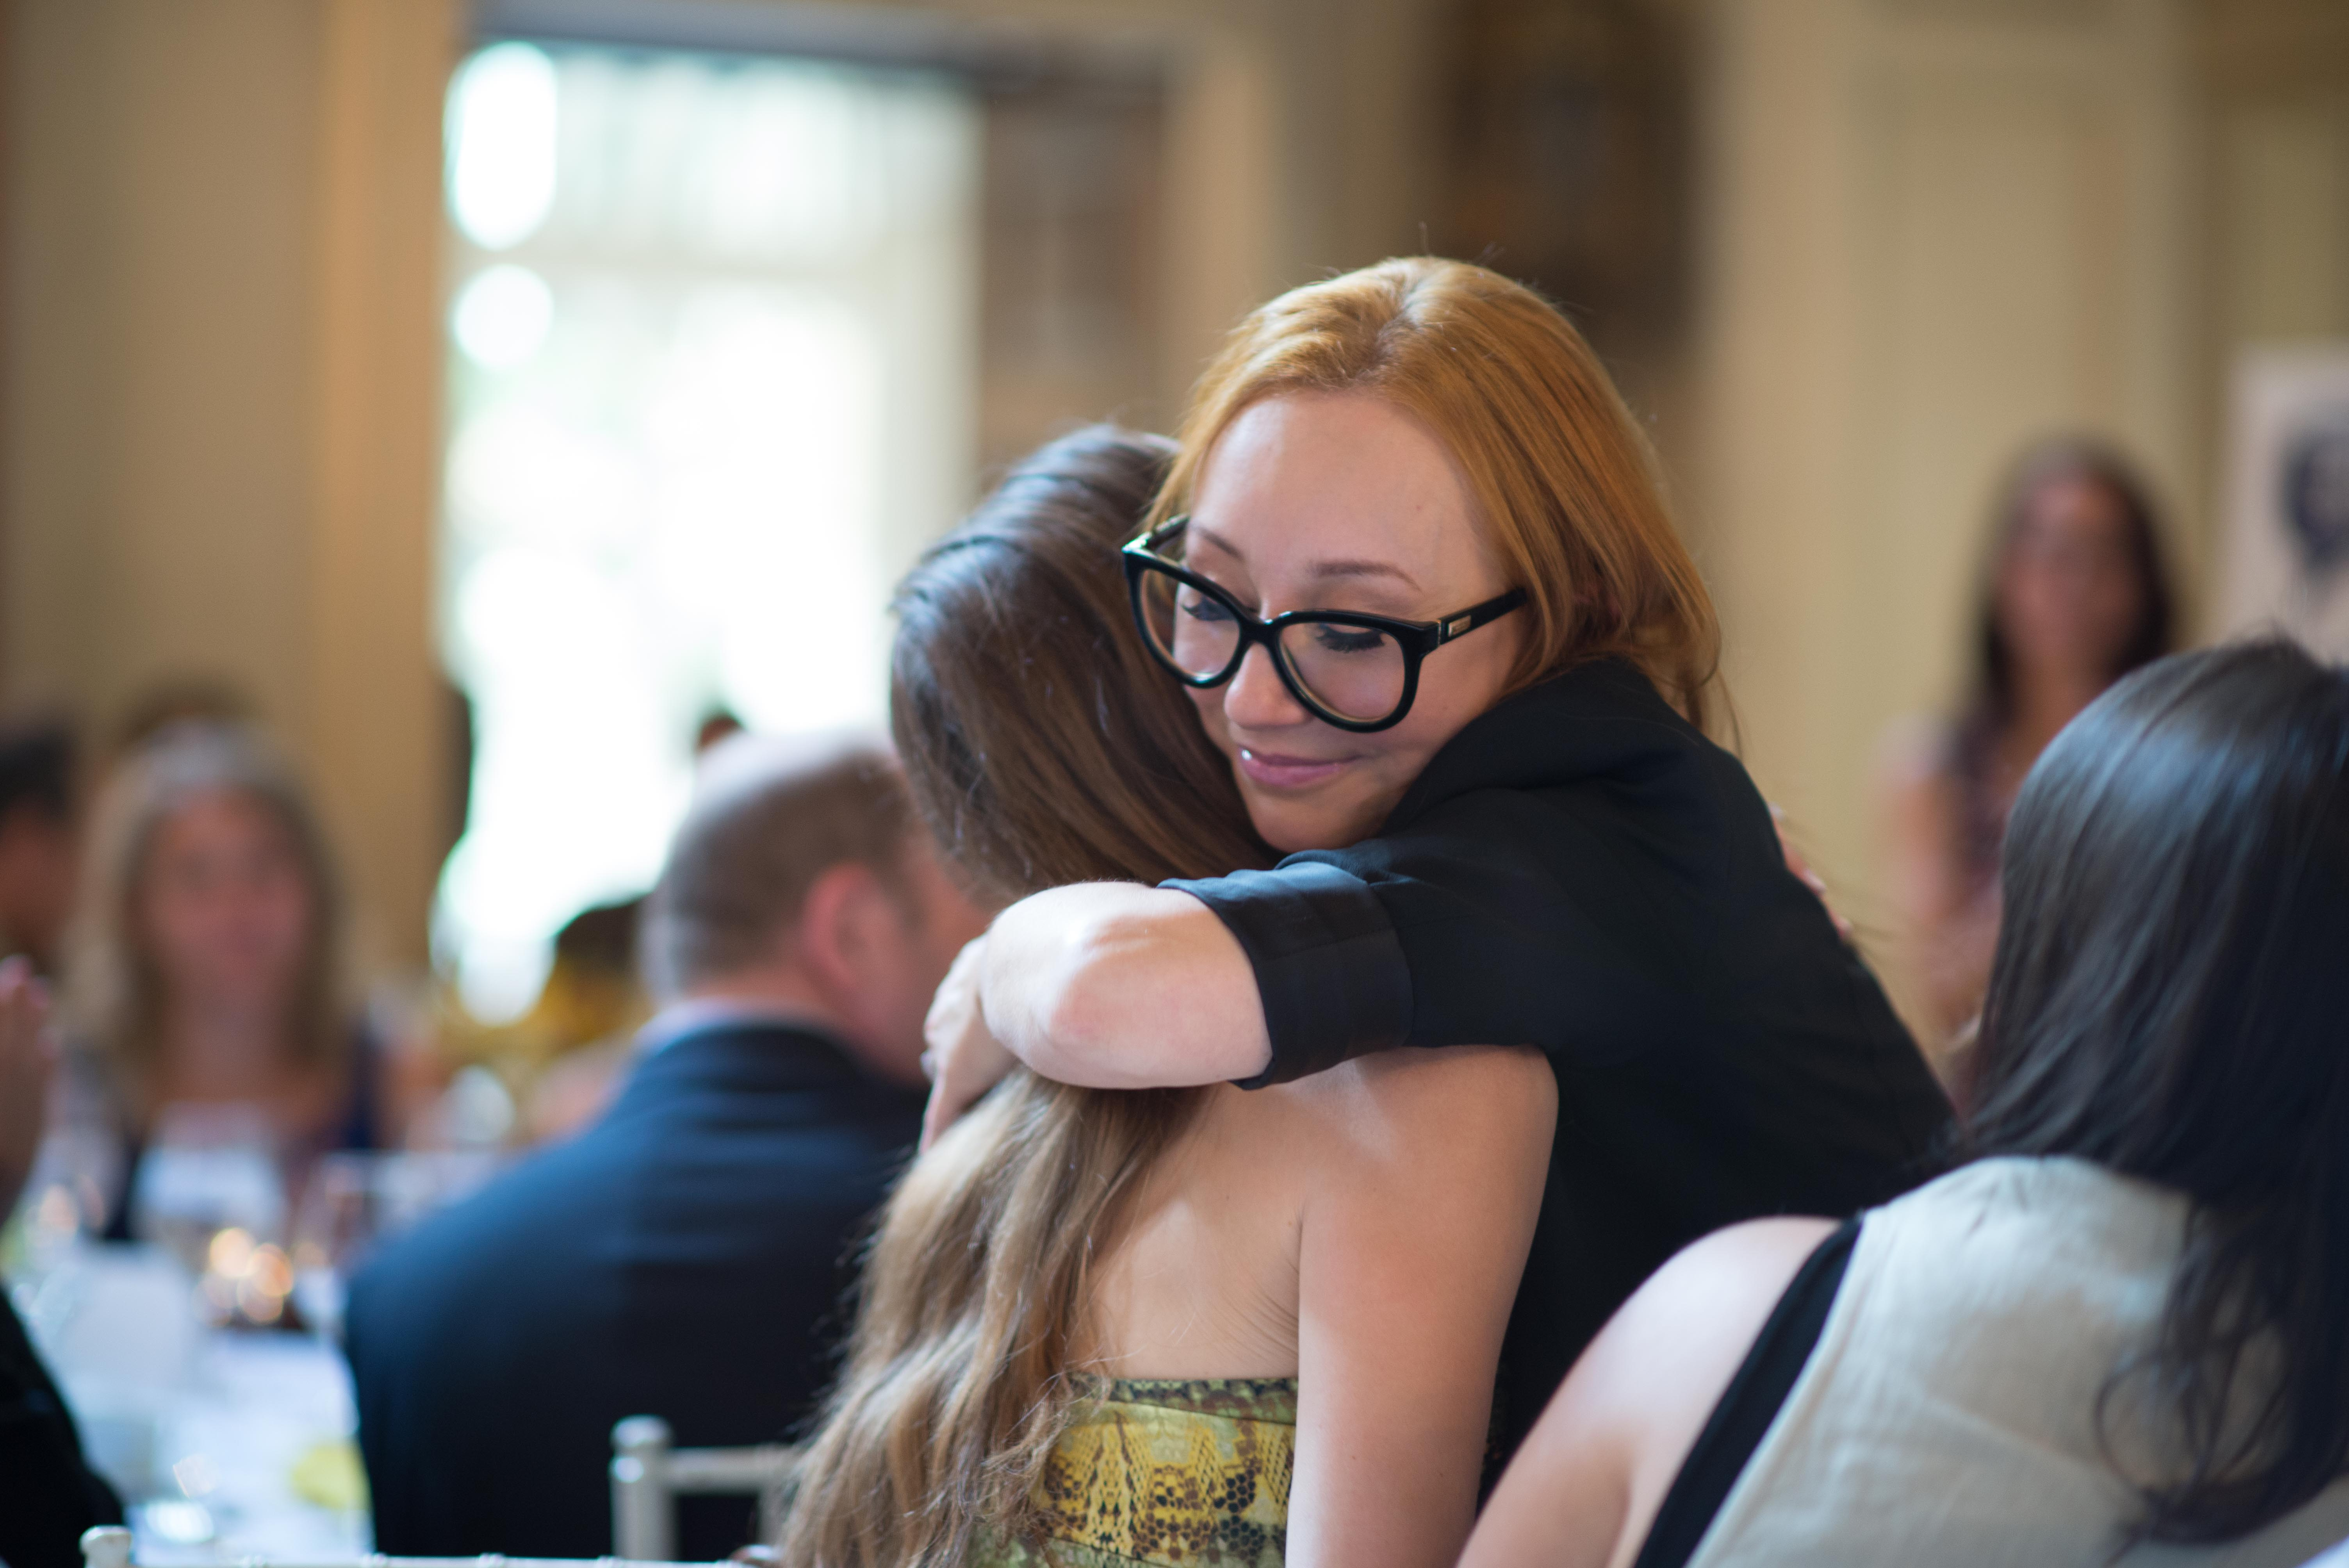 picture of Tori Amos as a spokesperson for the RAINN, hugging one of the audience members